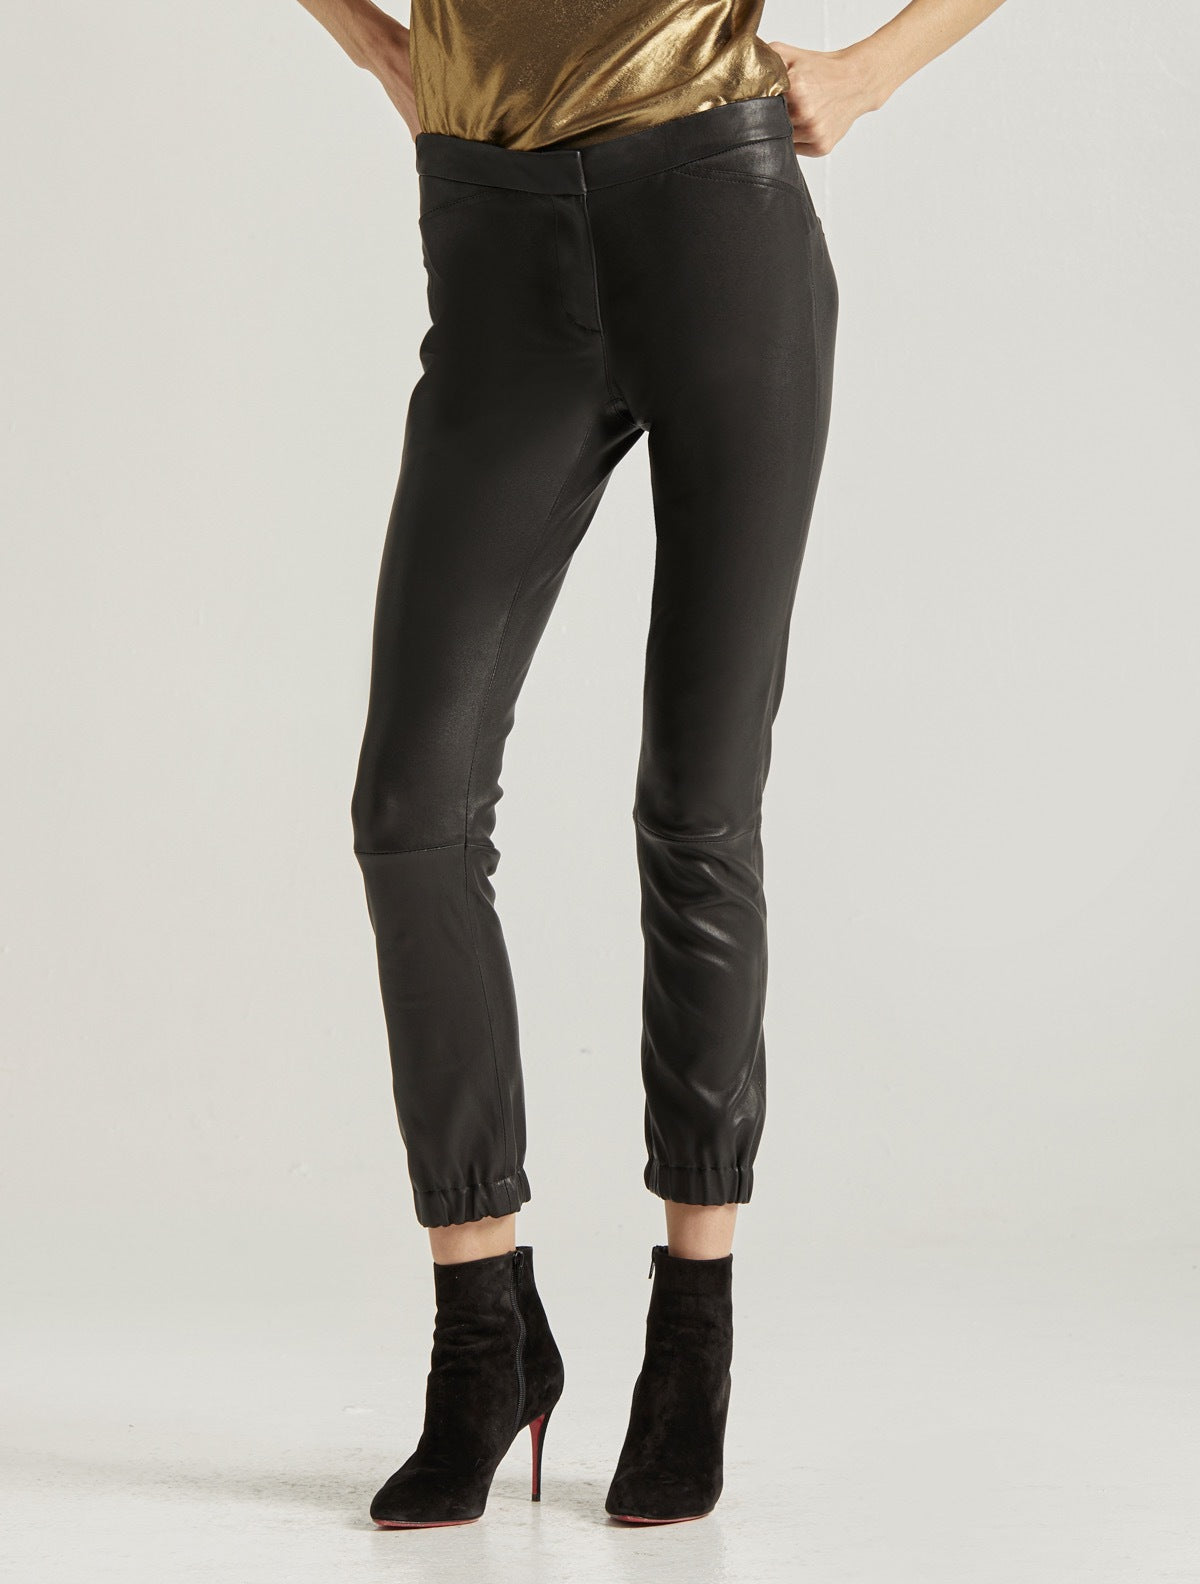 STRETCH LEATHER LEGGING - Halston